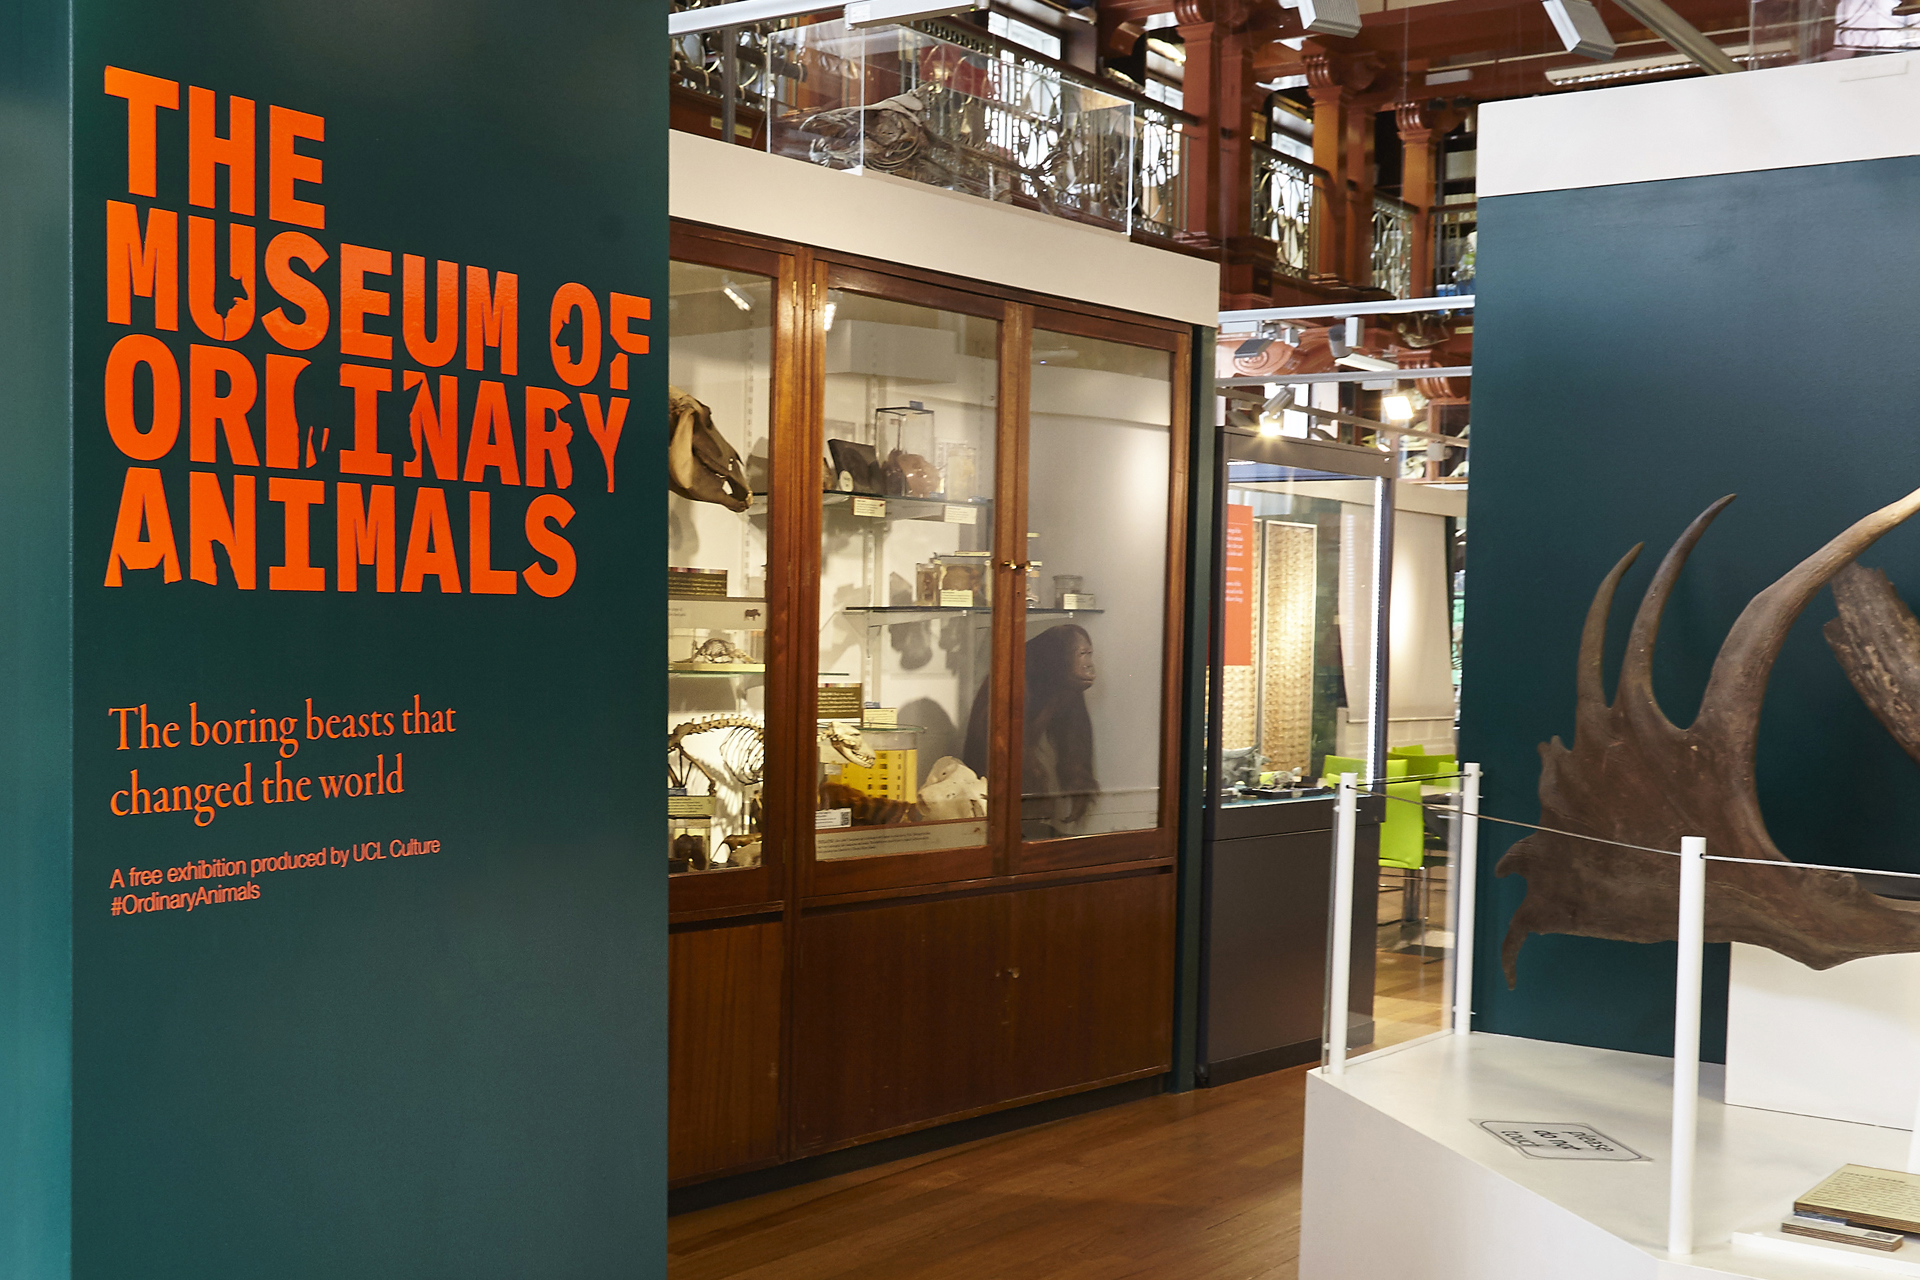 The Museum of Ordinary Animals